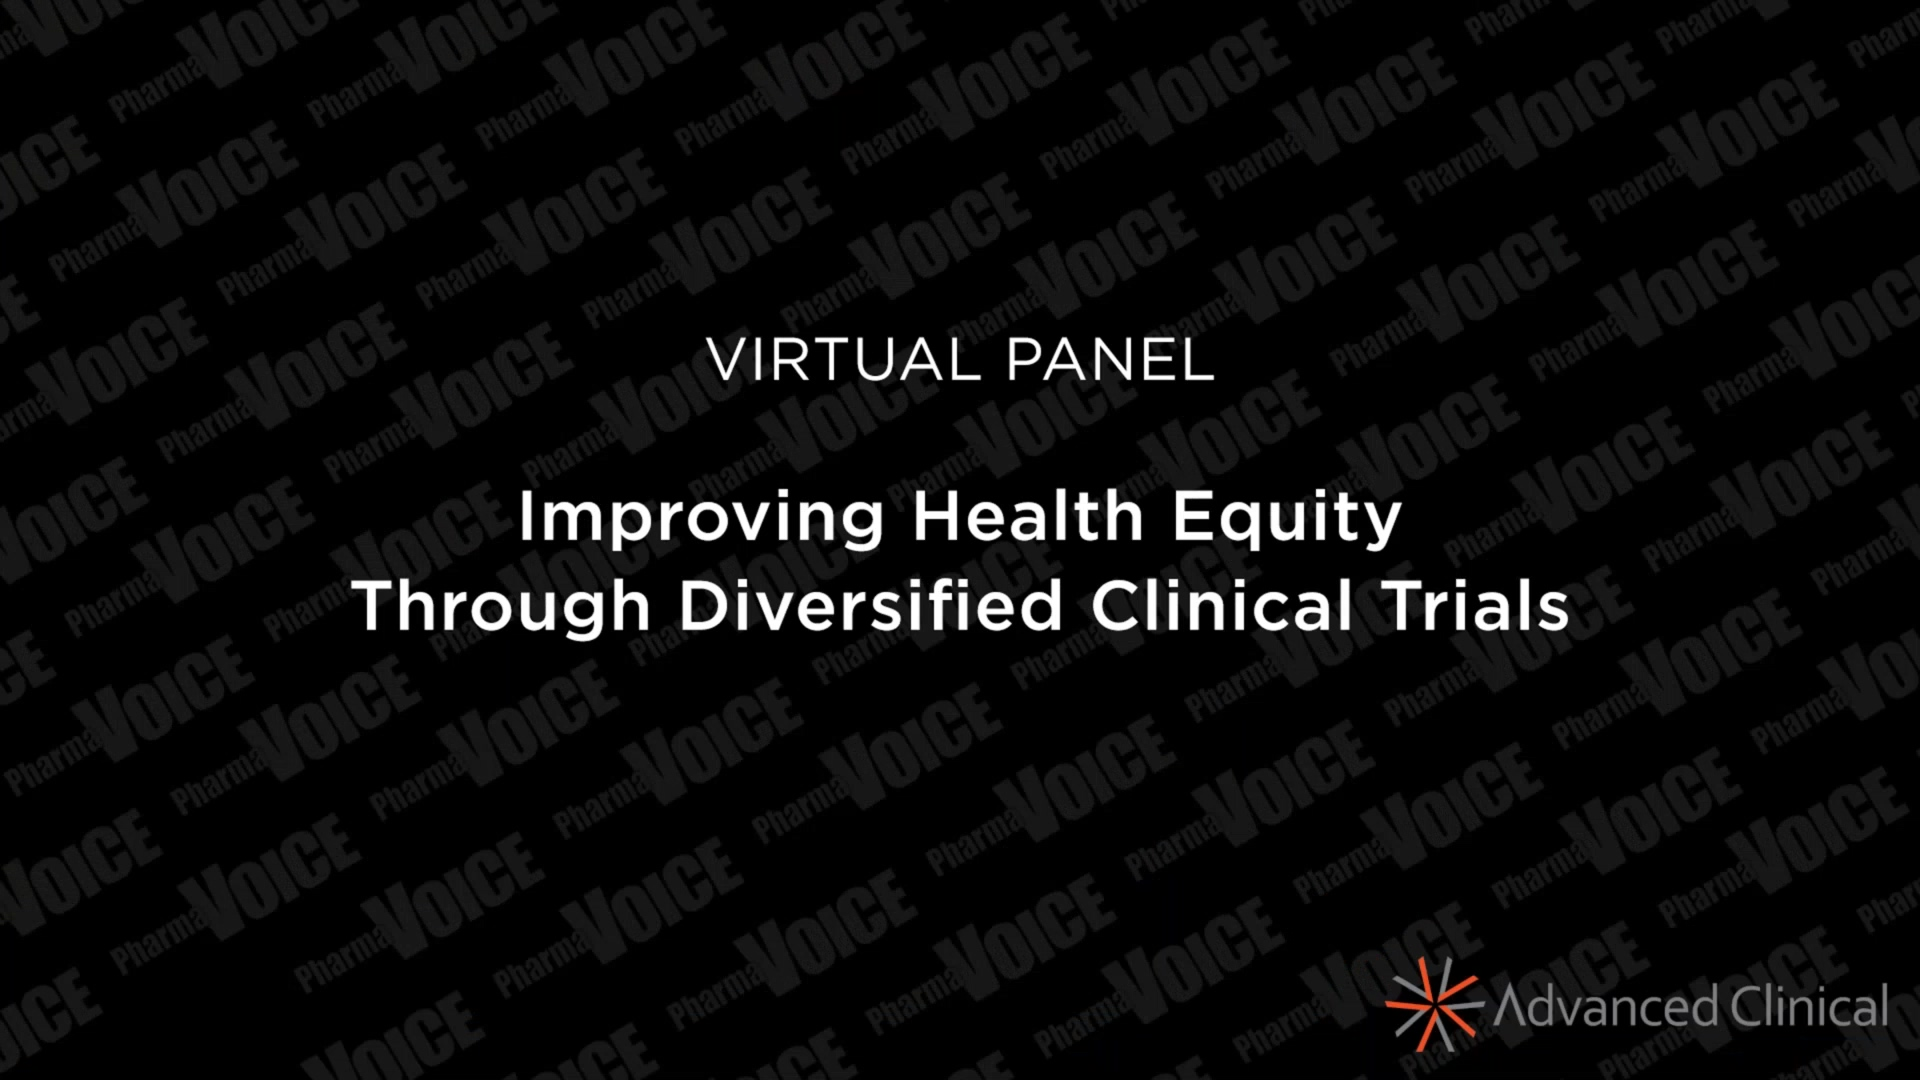 Virtual Panel_ Improving Health Equity Through Diversified Clinical Trials